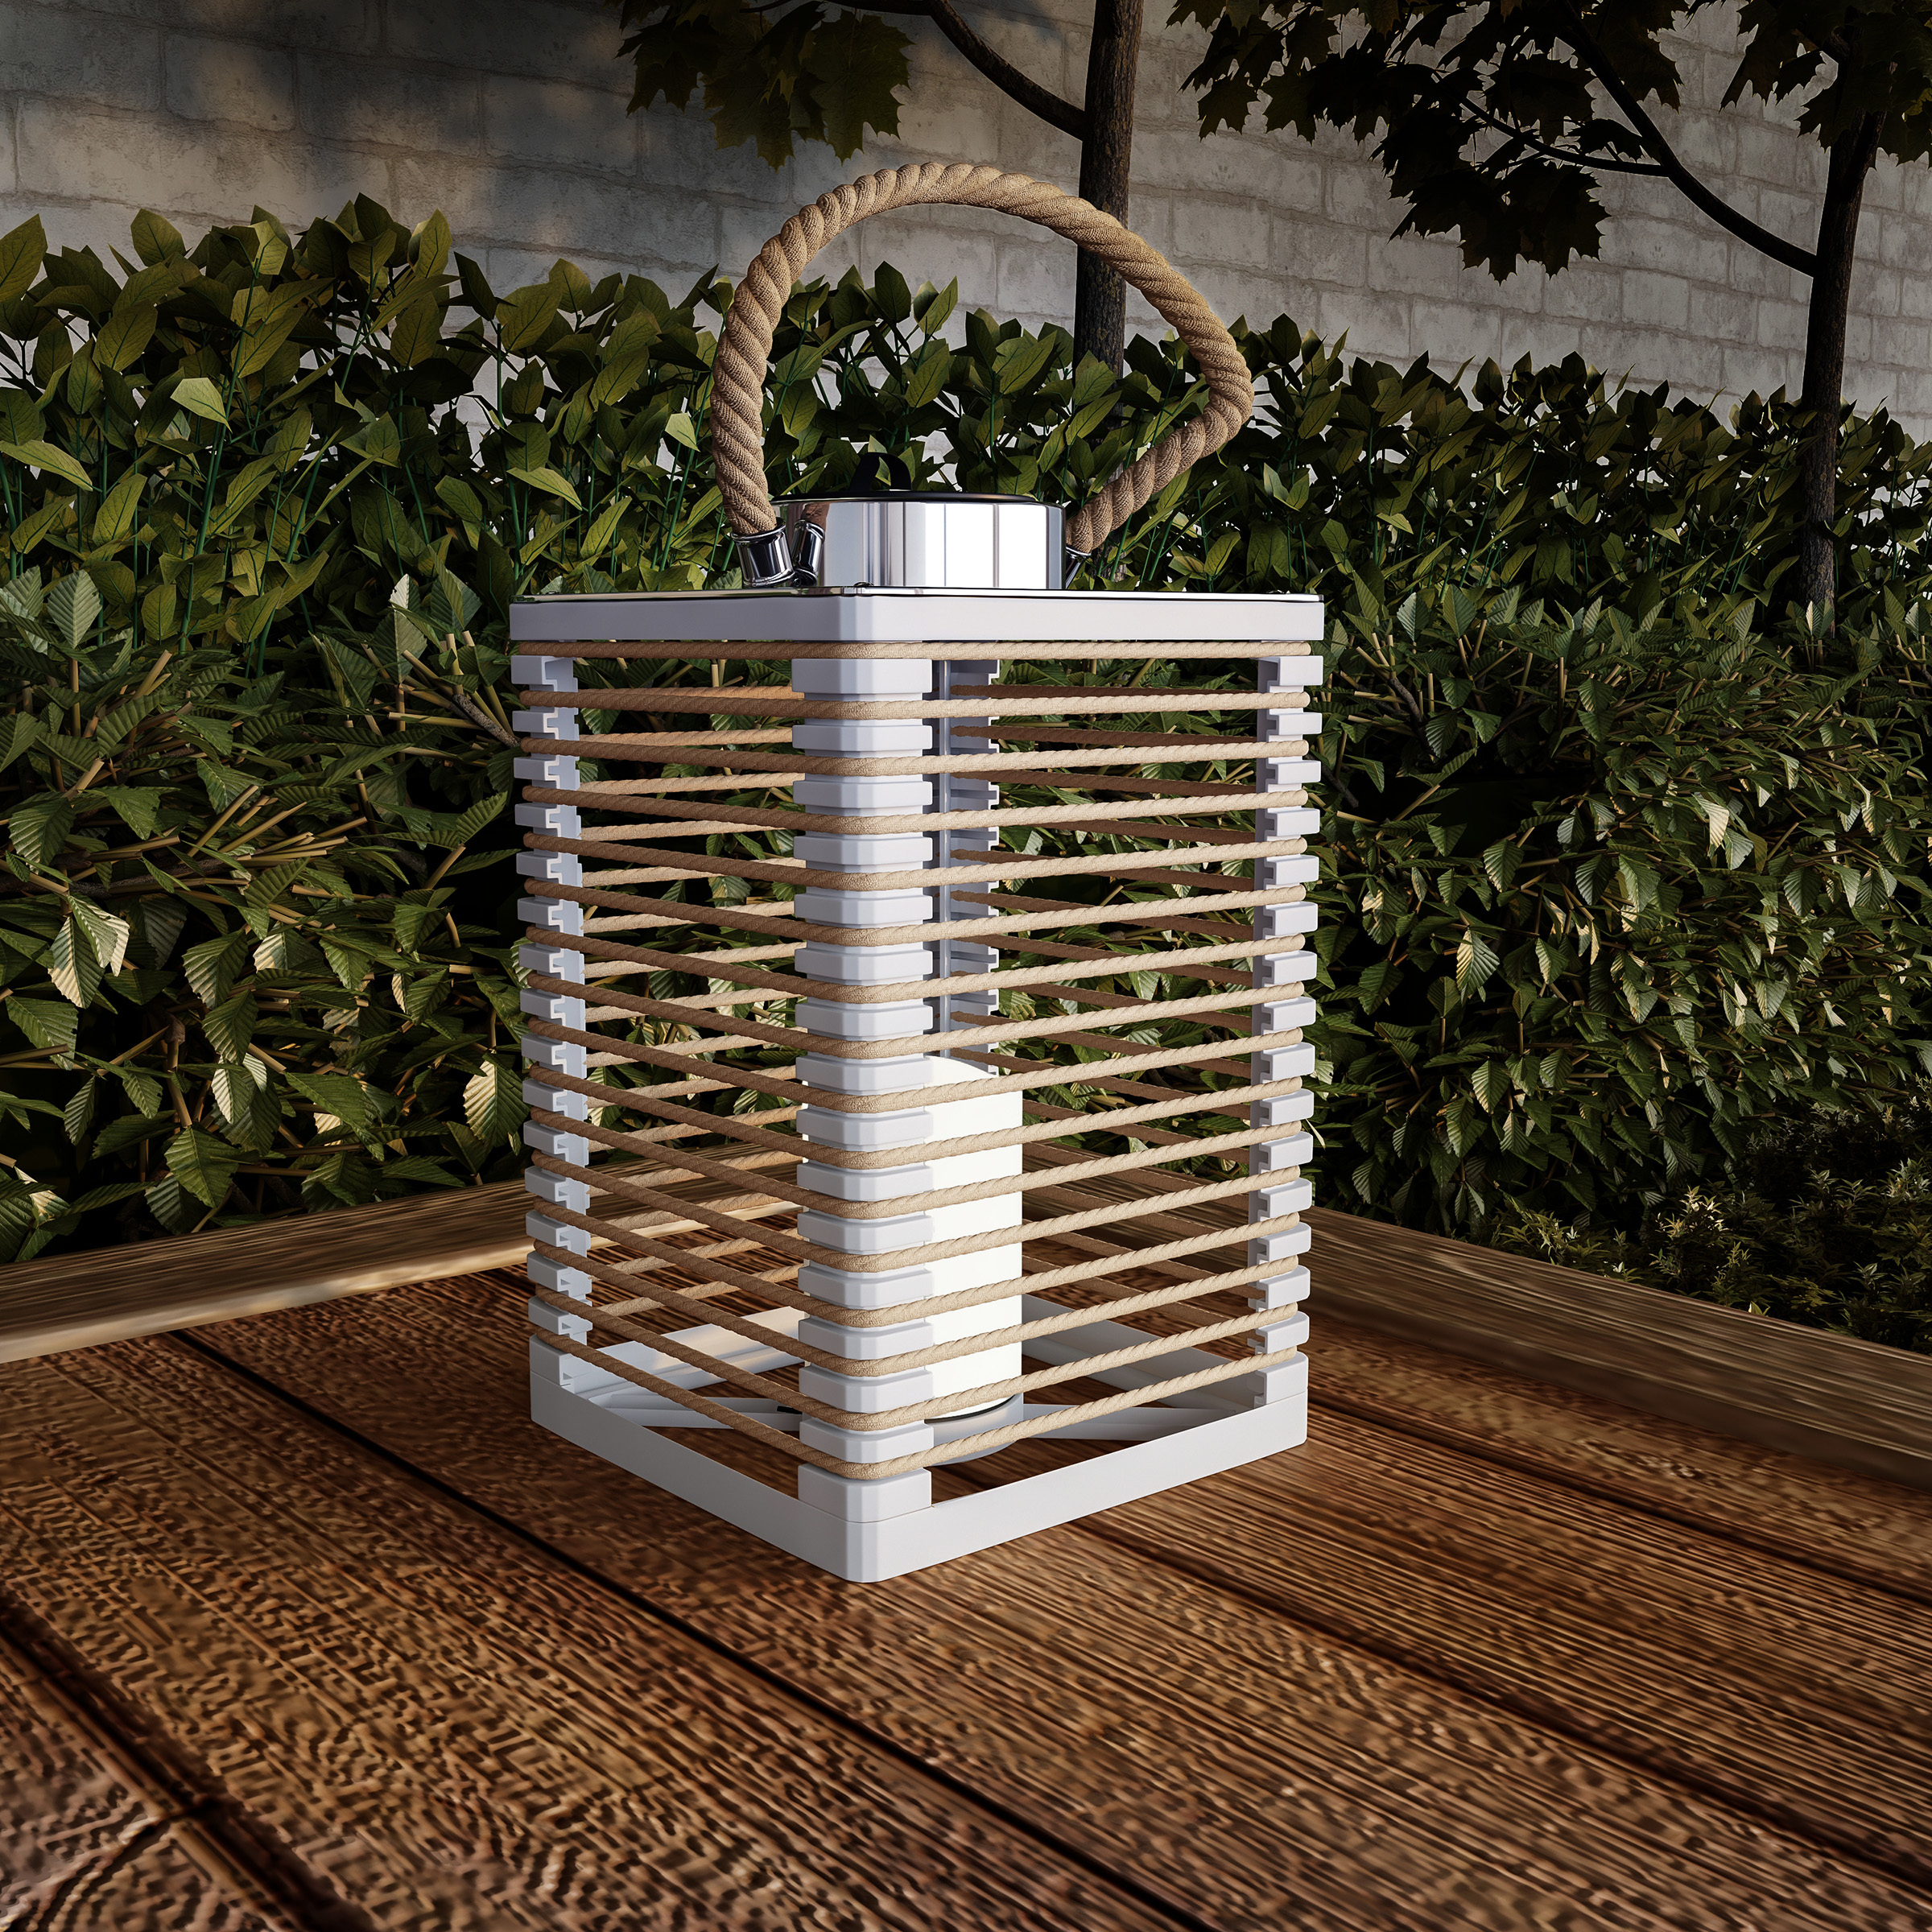 Solar Powered Lantern LED Candle Indoor Outdoor Flameless Lighting Solar or AA Battery Operated